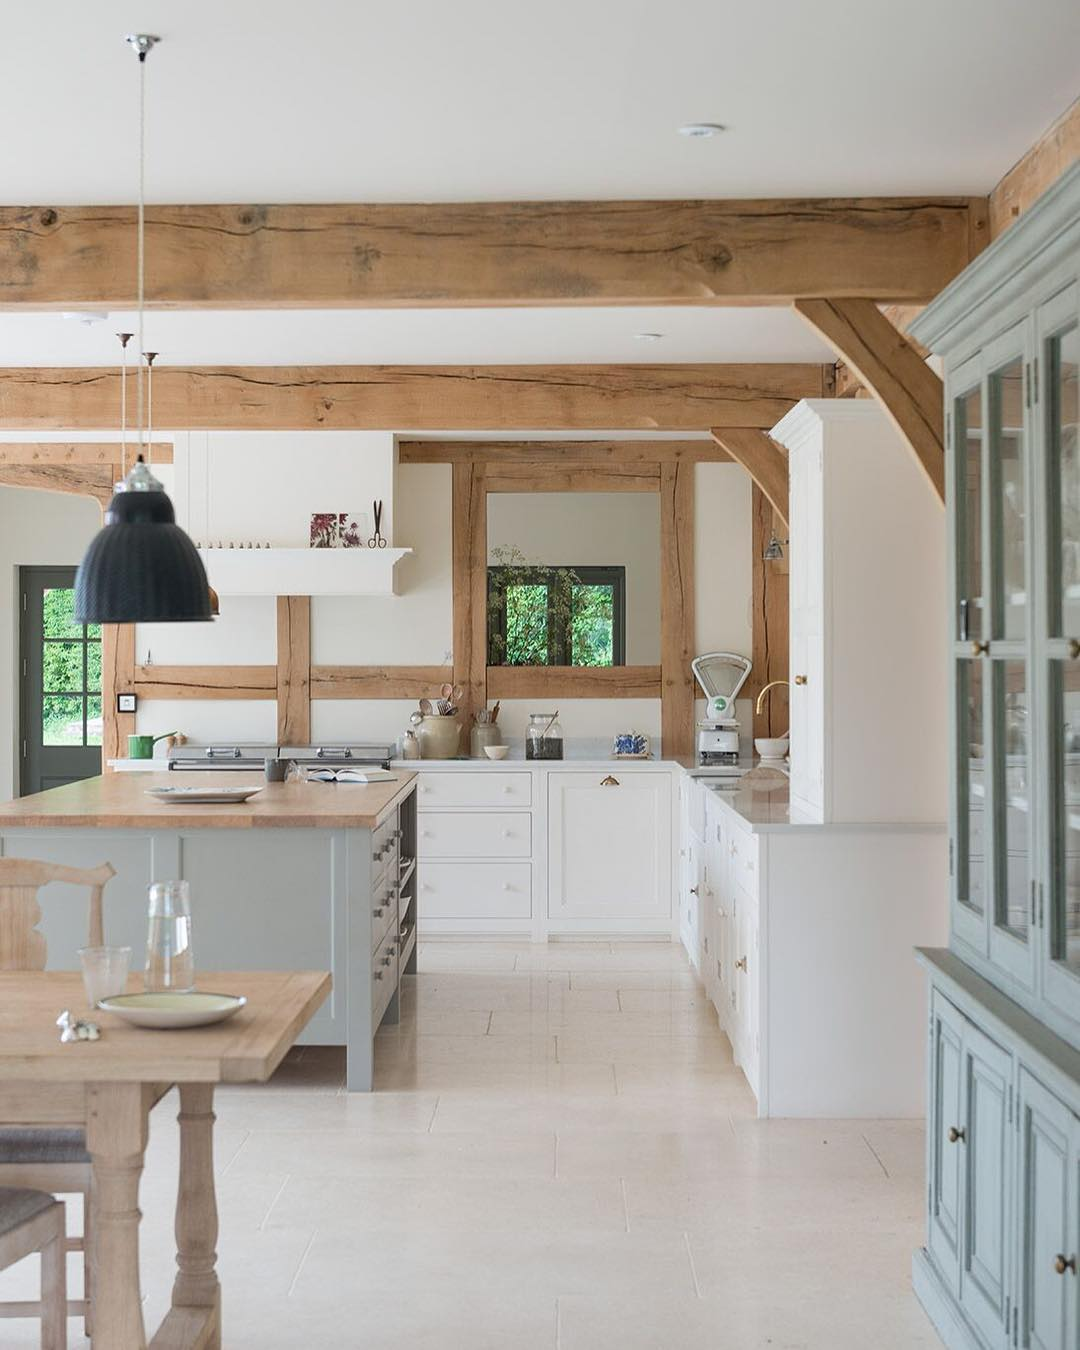 We love this British country kitchen - find out how to get the look (whether you live in the British countryside or not) on www.lovetohome.co.uk. Photo credit: @merryminvera and @border_oak via Instagram https://www.borderoak.com/